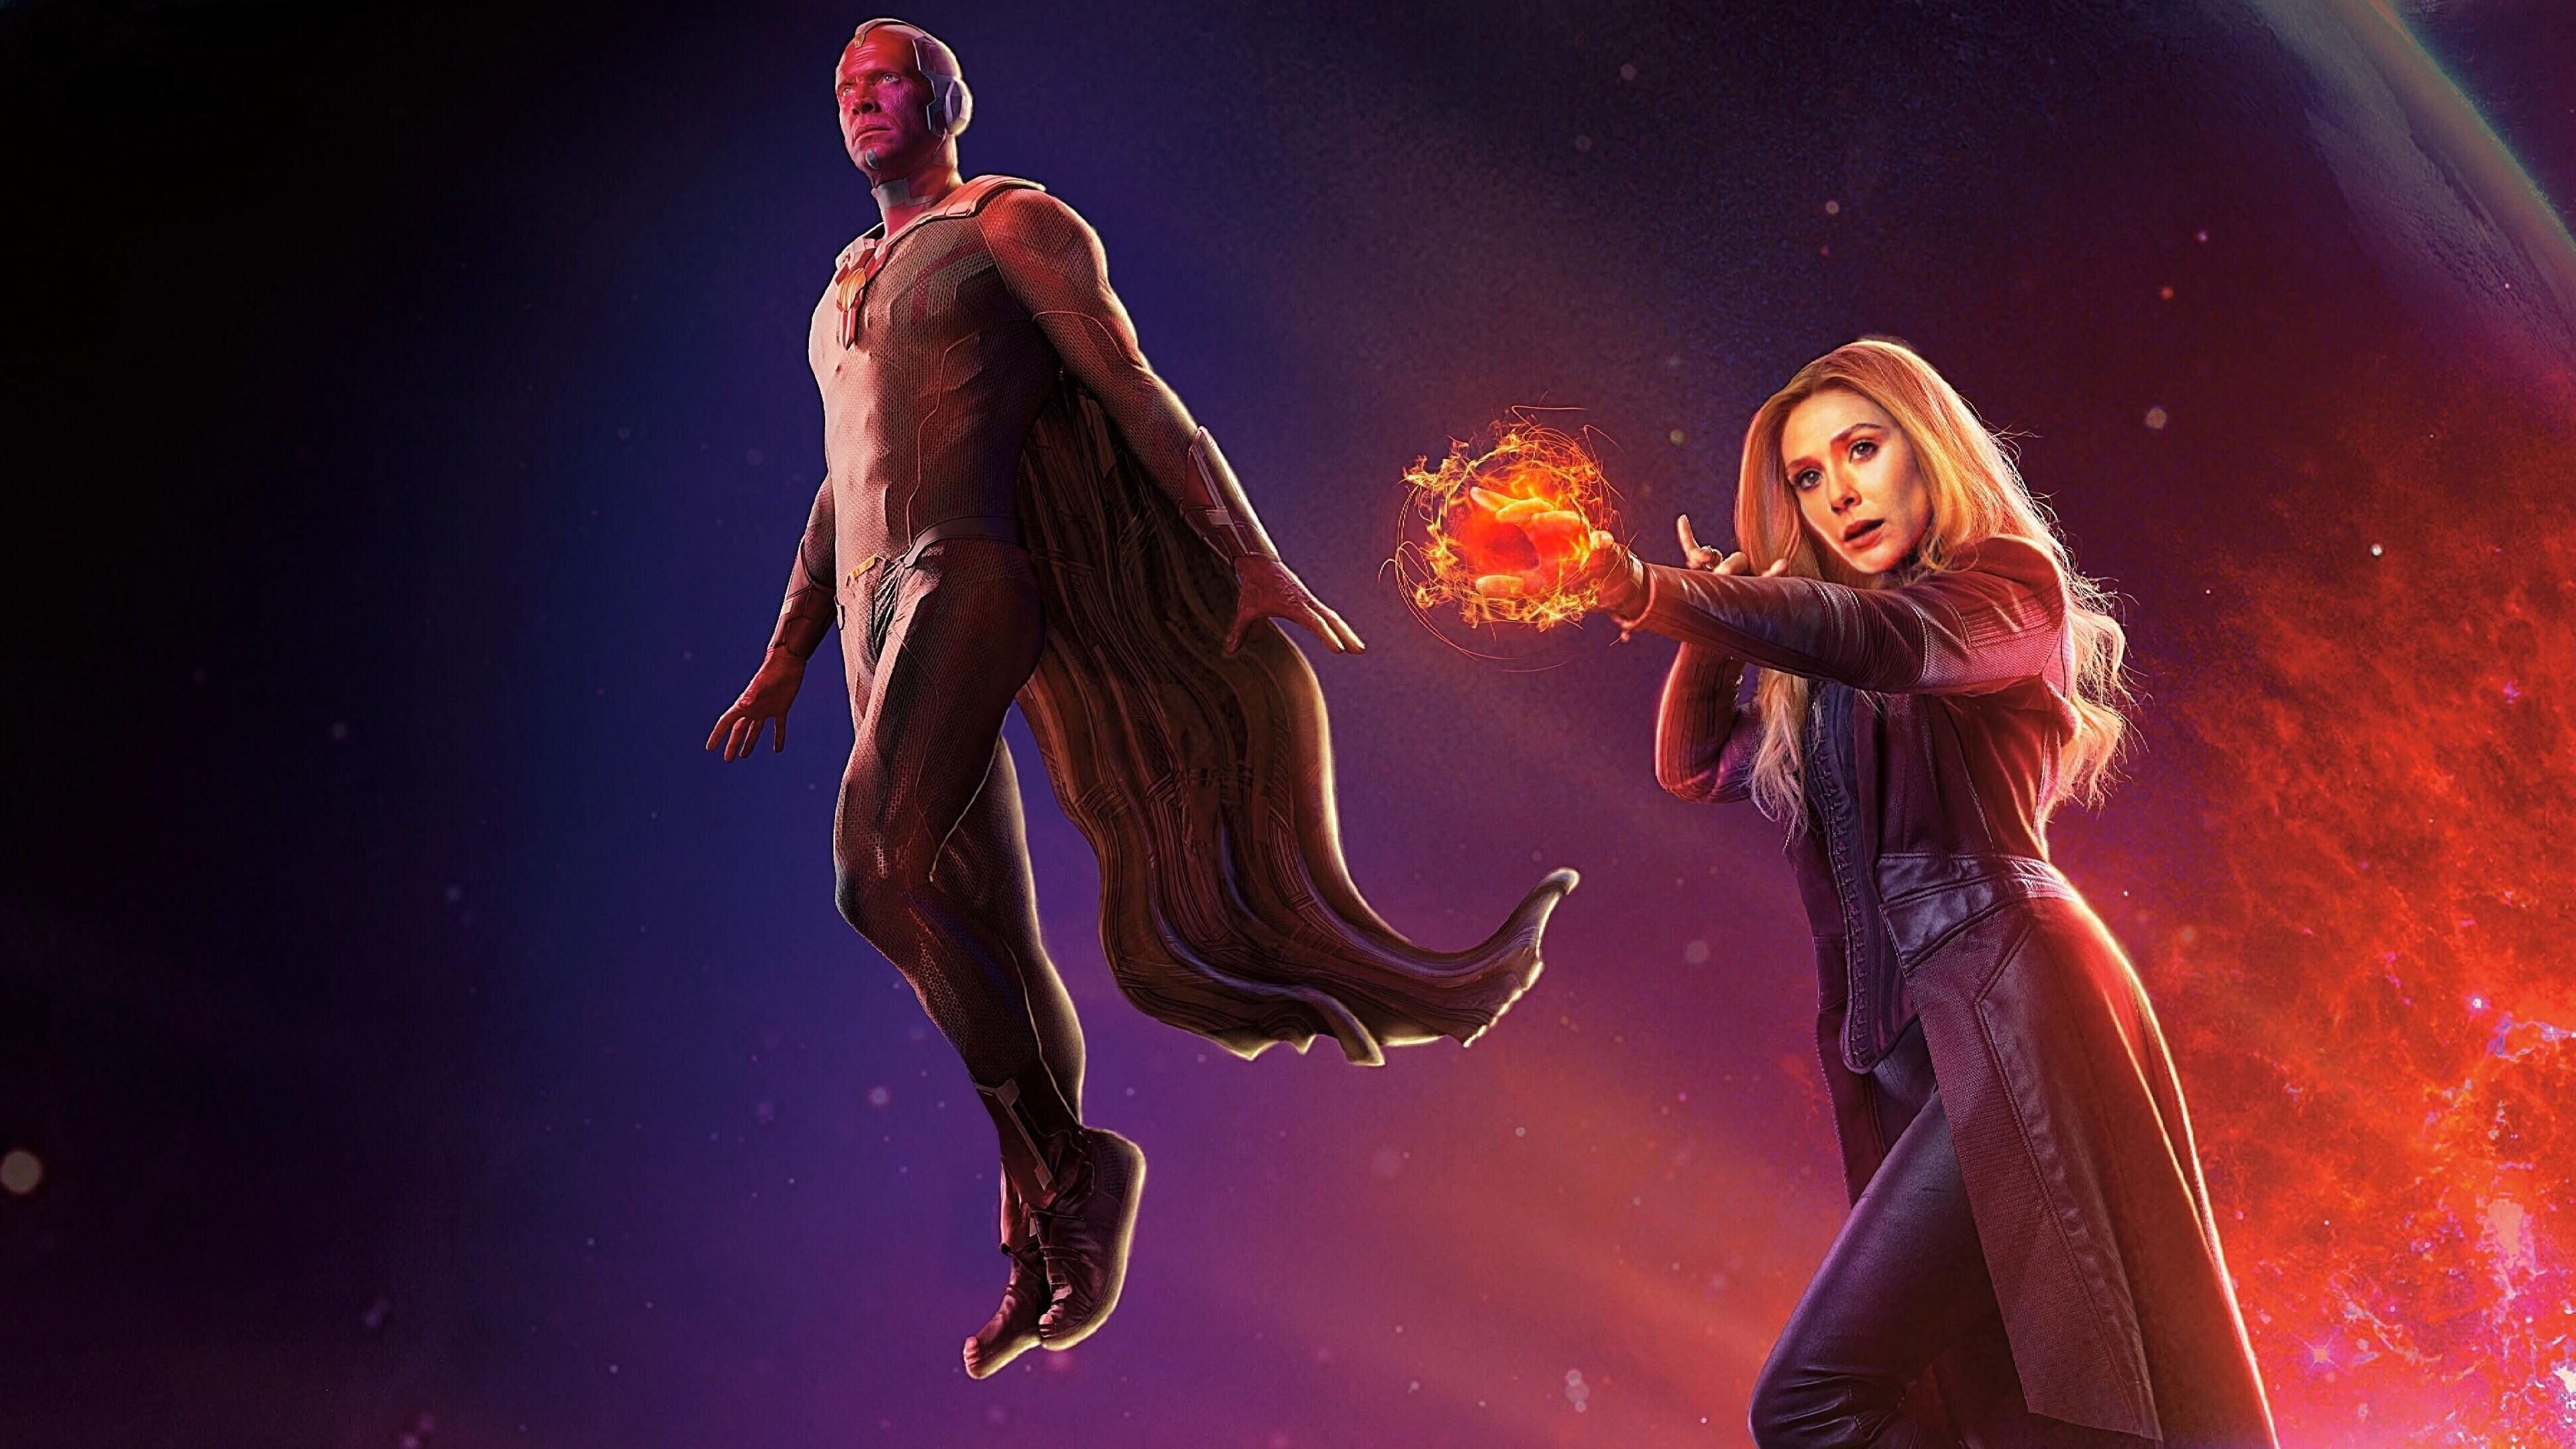 Avengers Infinity War Scarlet Witch And Vision 4k Wallpaper Witch Wallpaper Marvel Background Scarlet Witch